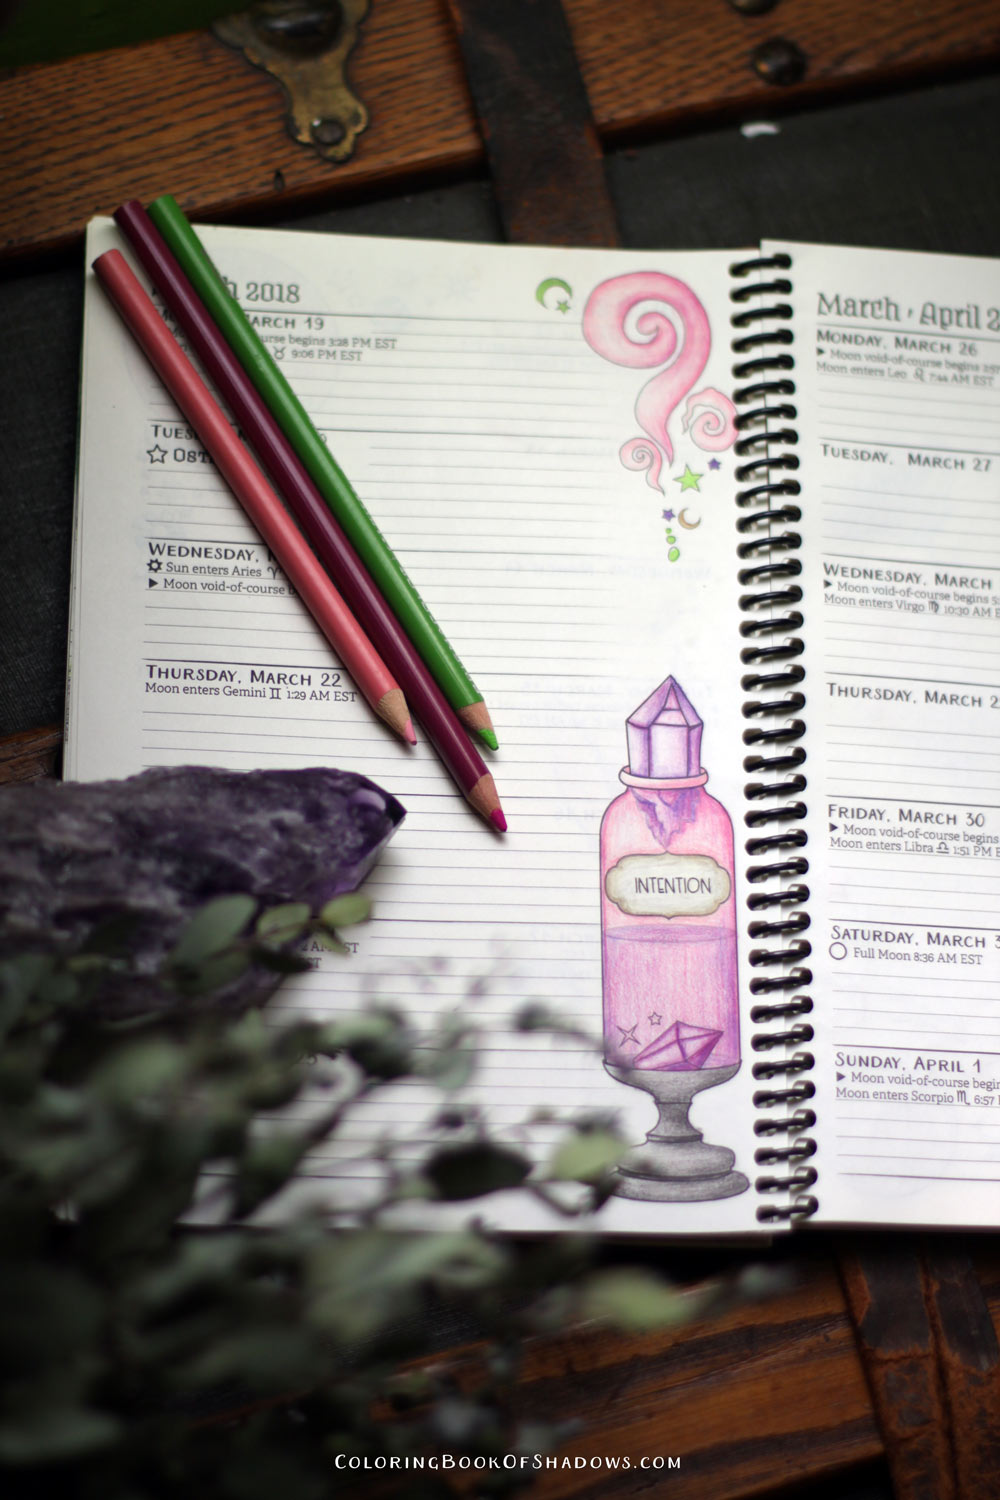 Witchy potion bottles and more magical coloring inspiration